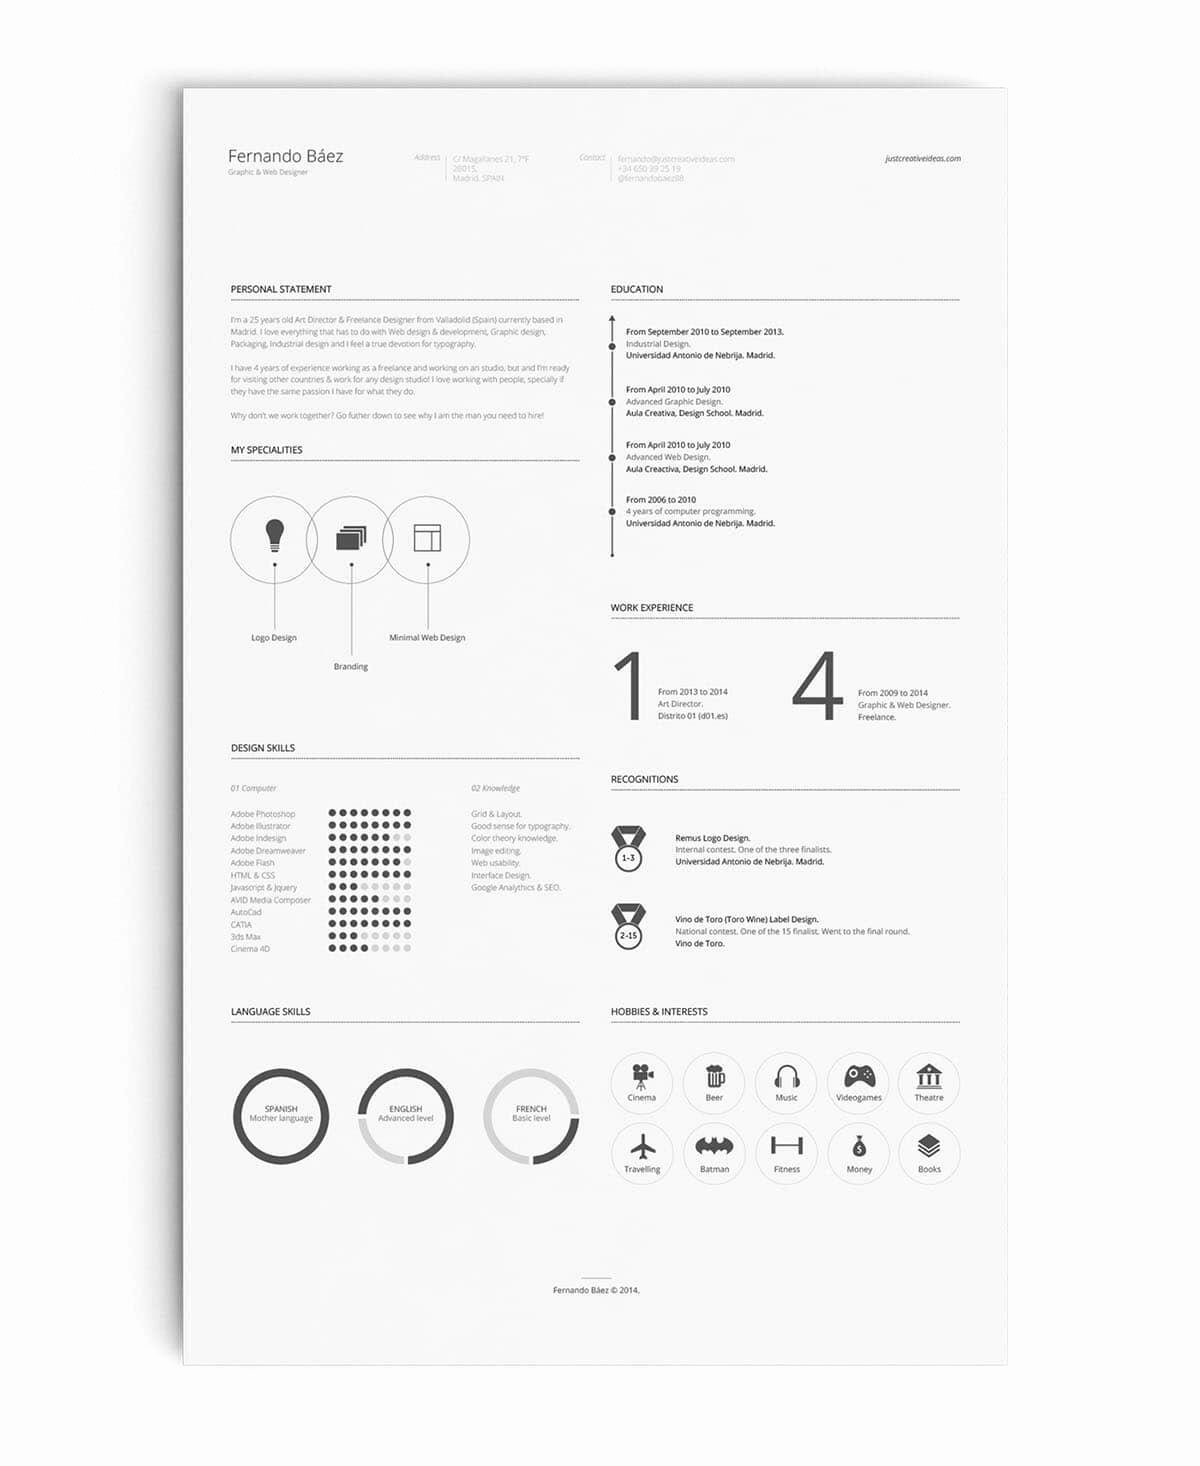 Resume with Picture Template Elegant 17 Free Resume Templates Downloadable